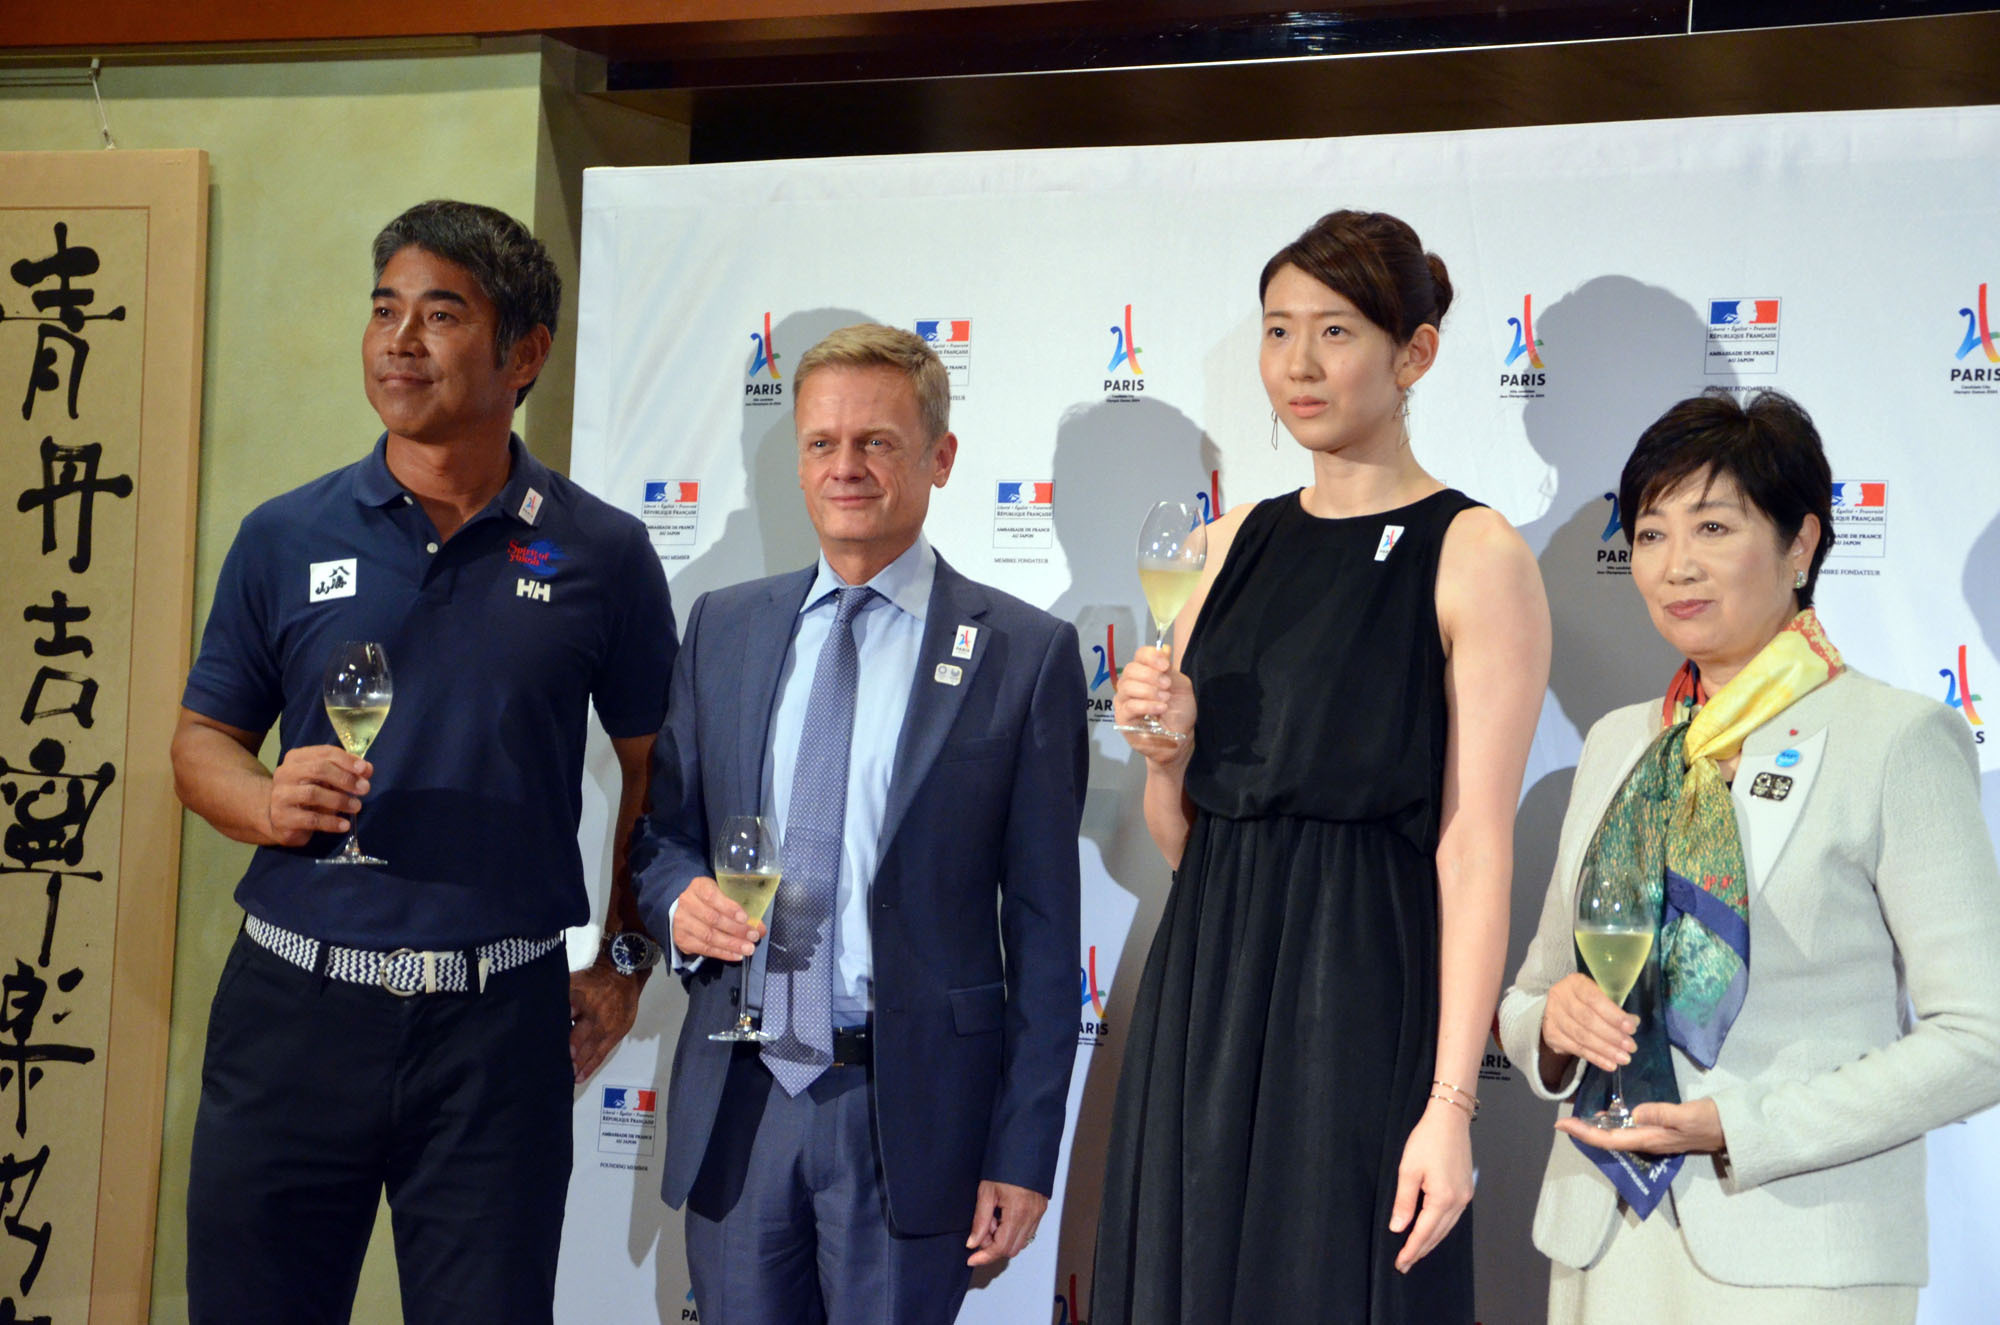 French Ambassador Laurent Pic (second from left) and Tokyo Gov. Yuriko Koike (right) pose for a photograph with Olympic athletes Kojiro Shiraishi (left) and Yukiko Ebata (second from right) at a reception in Tokyo on Sept. 14 following an announcement that Paris had been selected to host the 2024 Olympics. |  COURTESY OF THE FRENCH EMBASSY